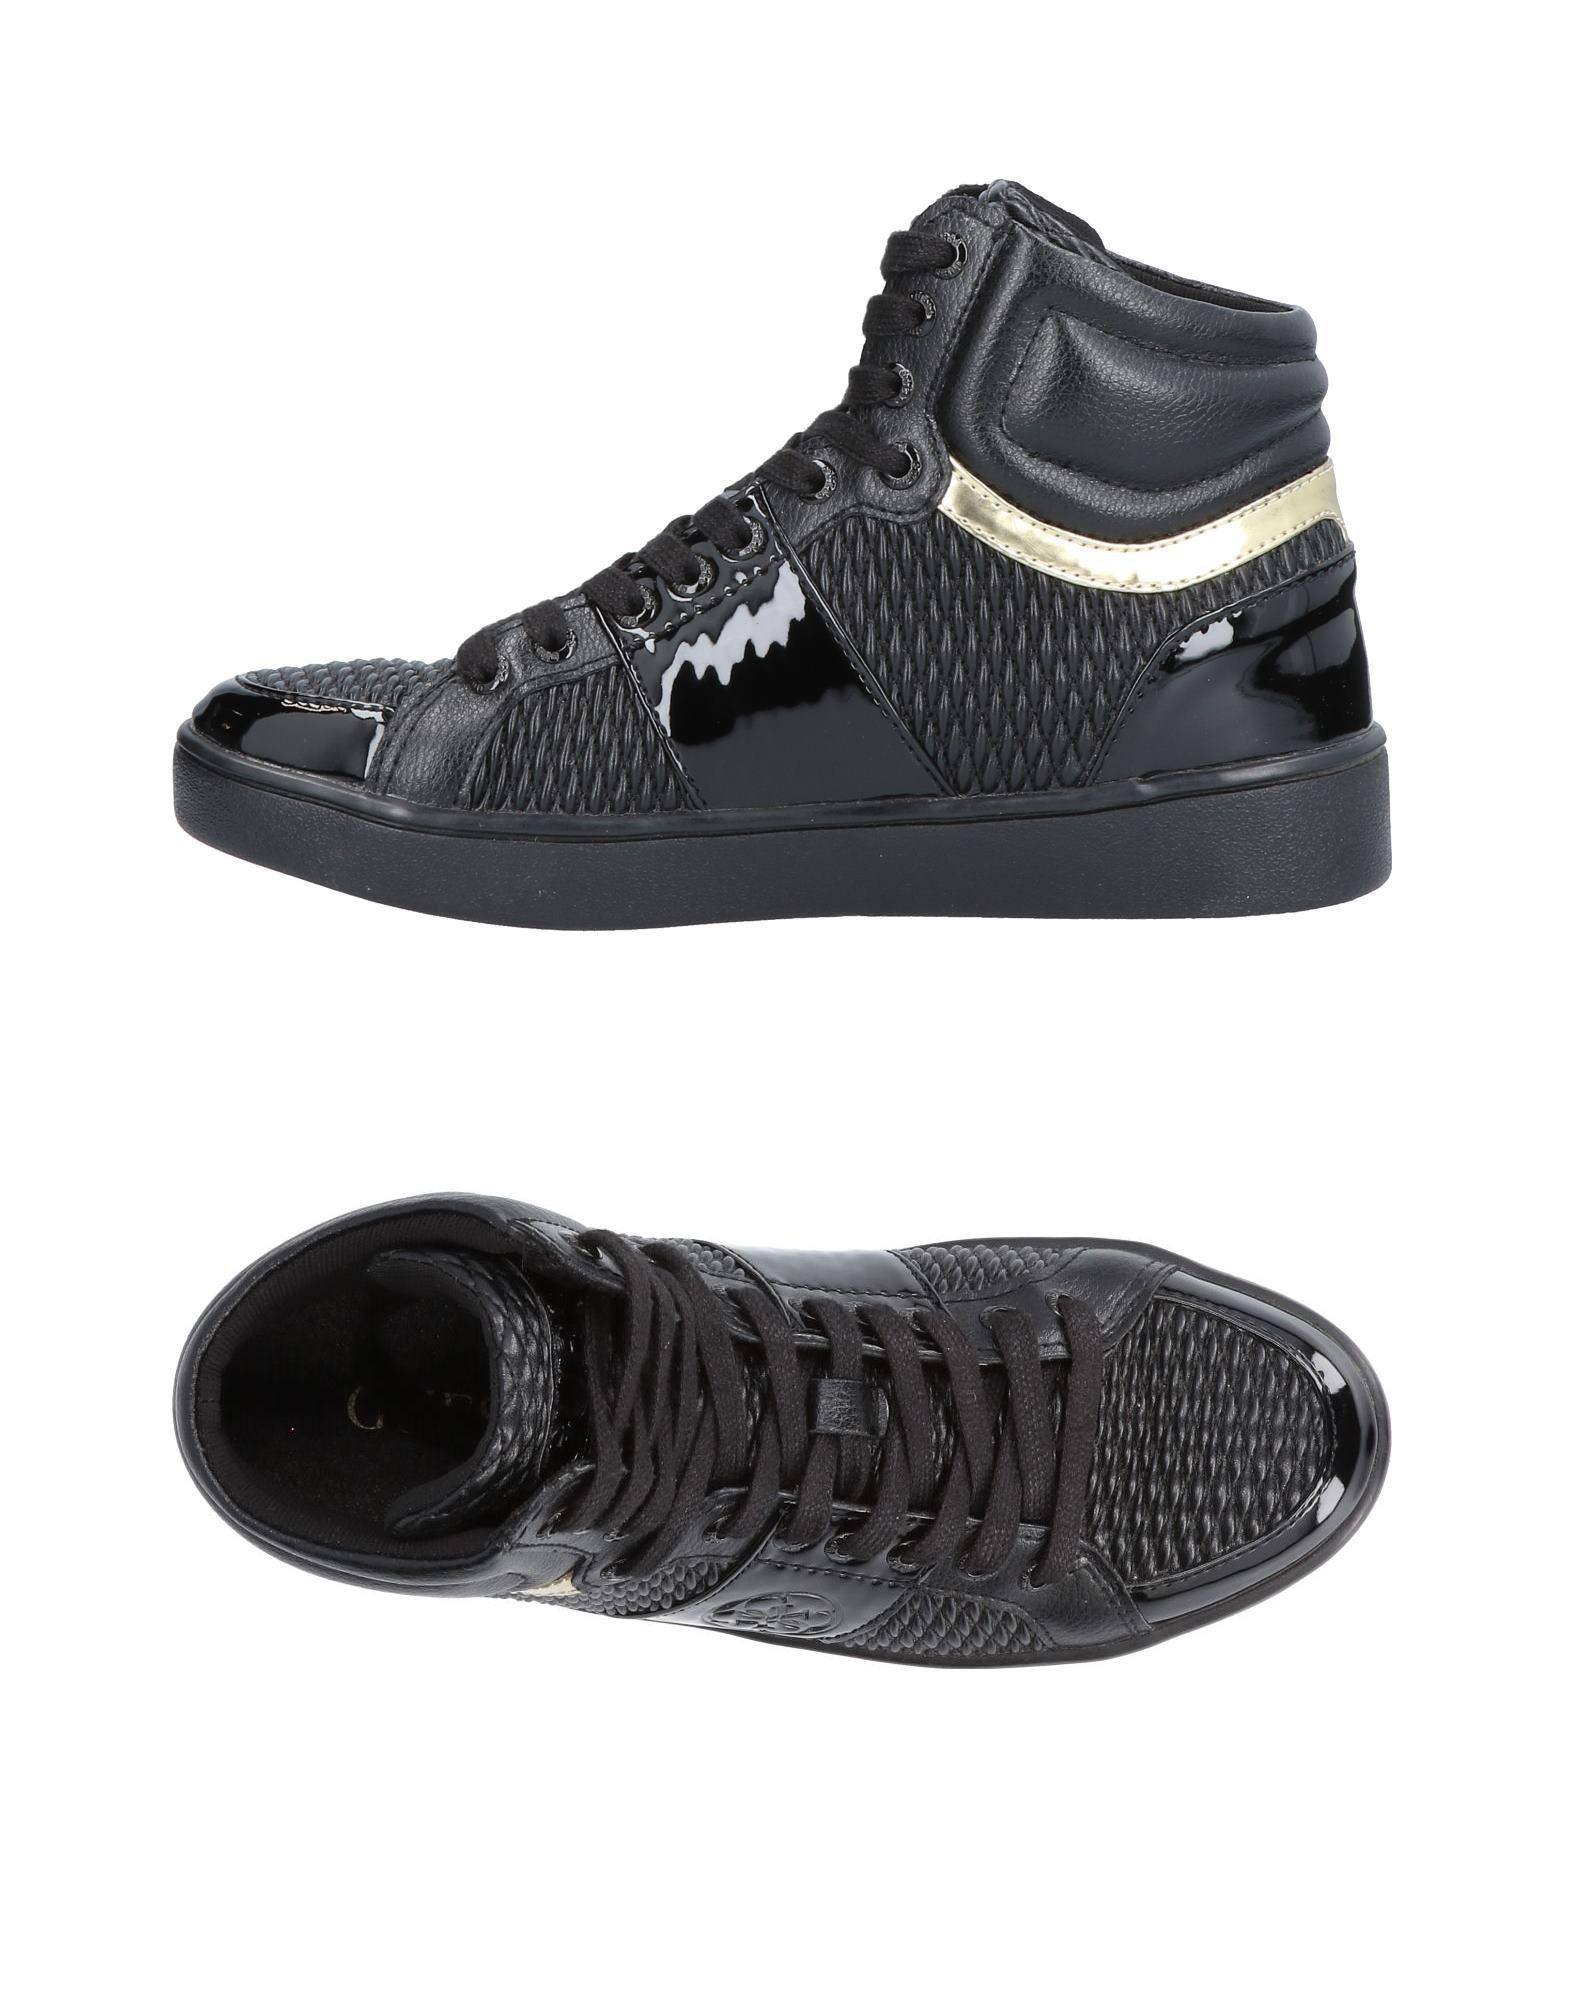 0f2d7619fa7a Lyst - Guess High-tops   Sneakers in Black for Men